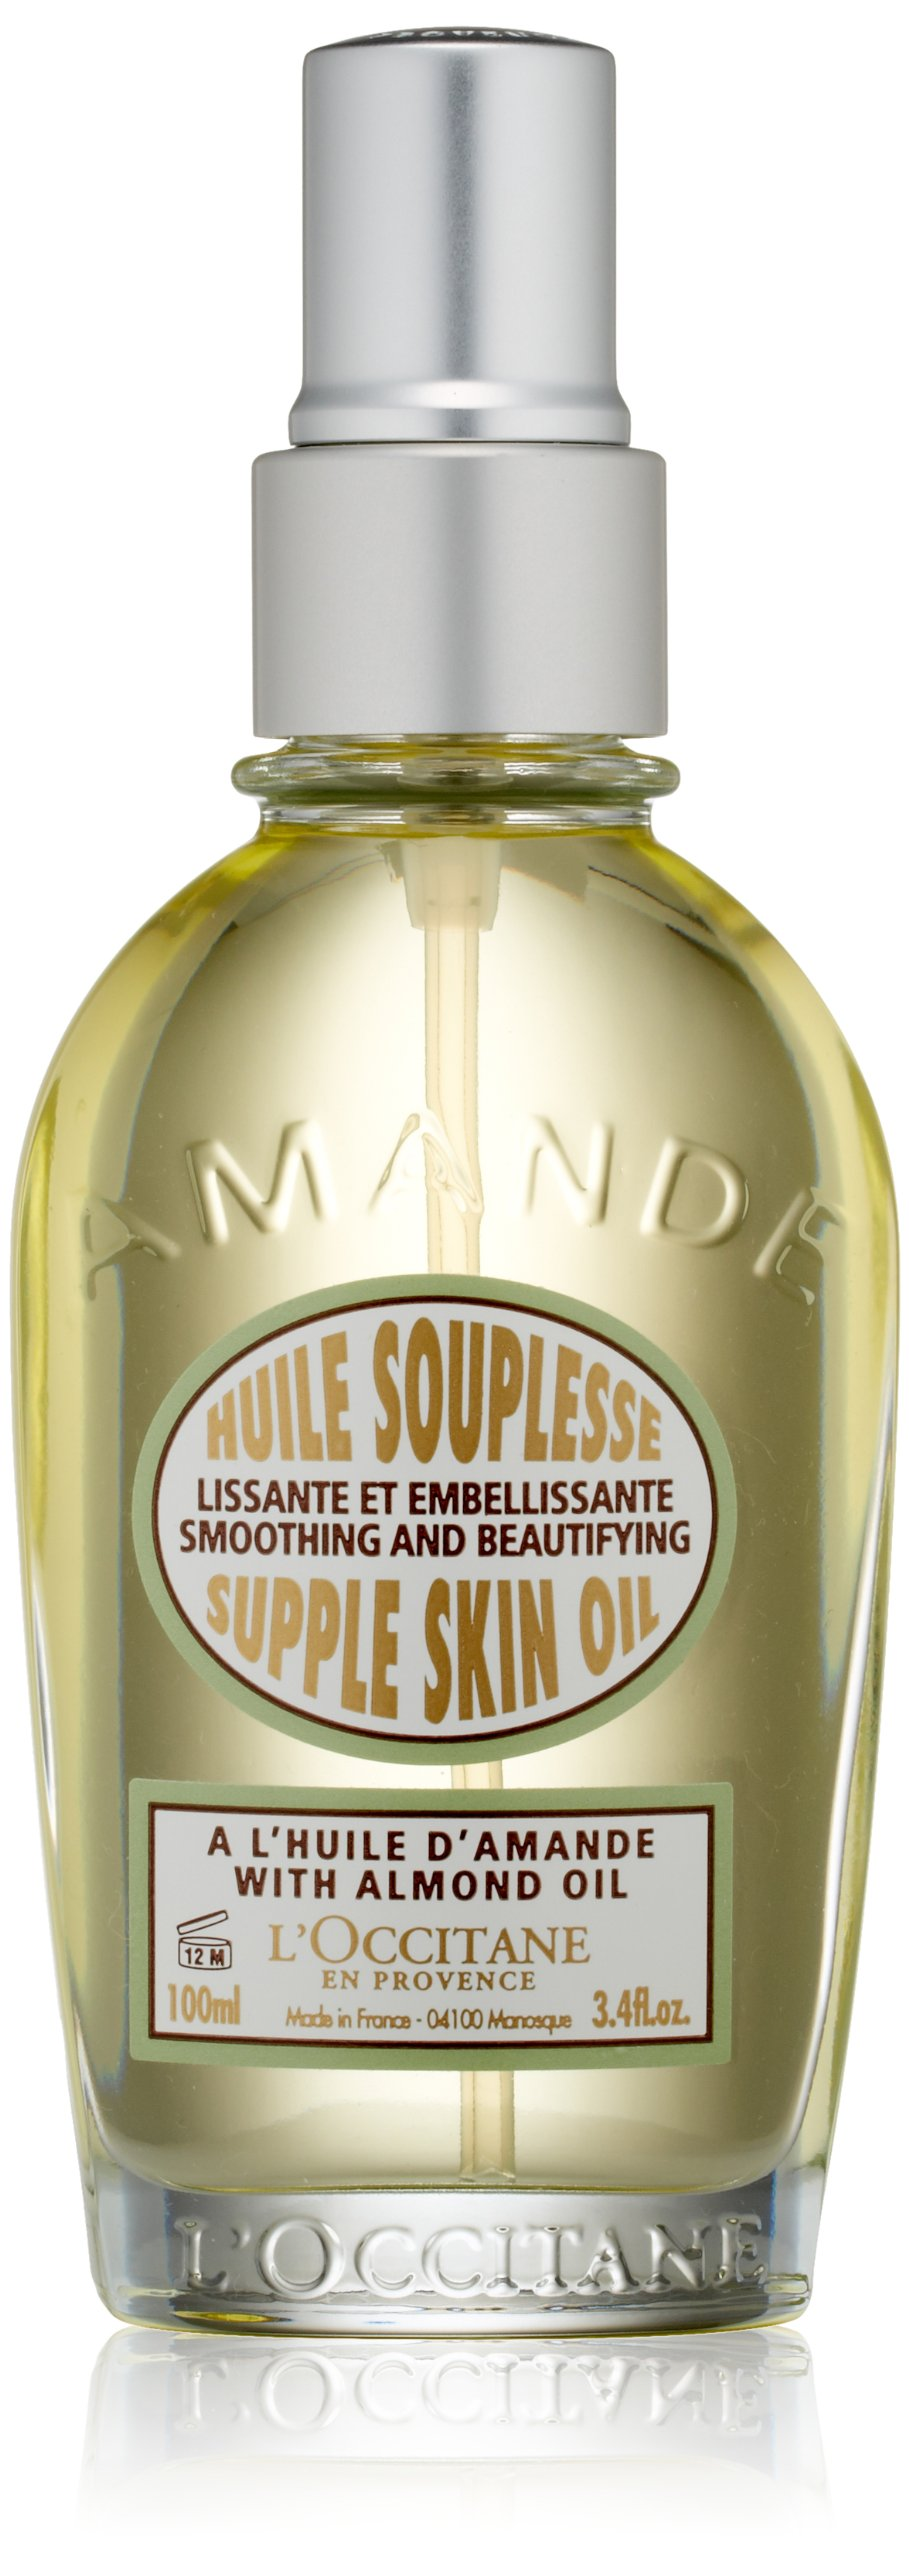 L'Occitane Smoothing & Beautifying Almond Supple Skin Body Oil, 3.4 fl. oz.